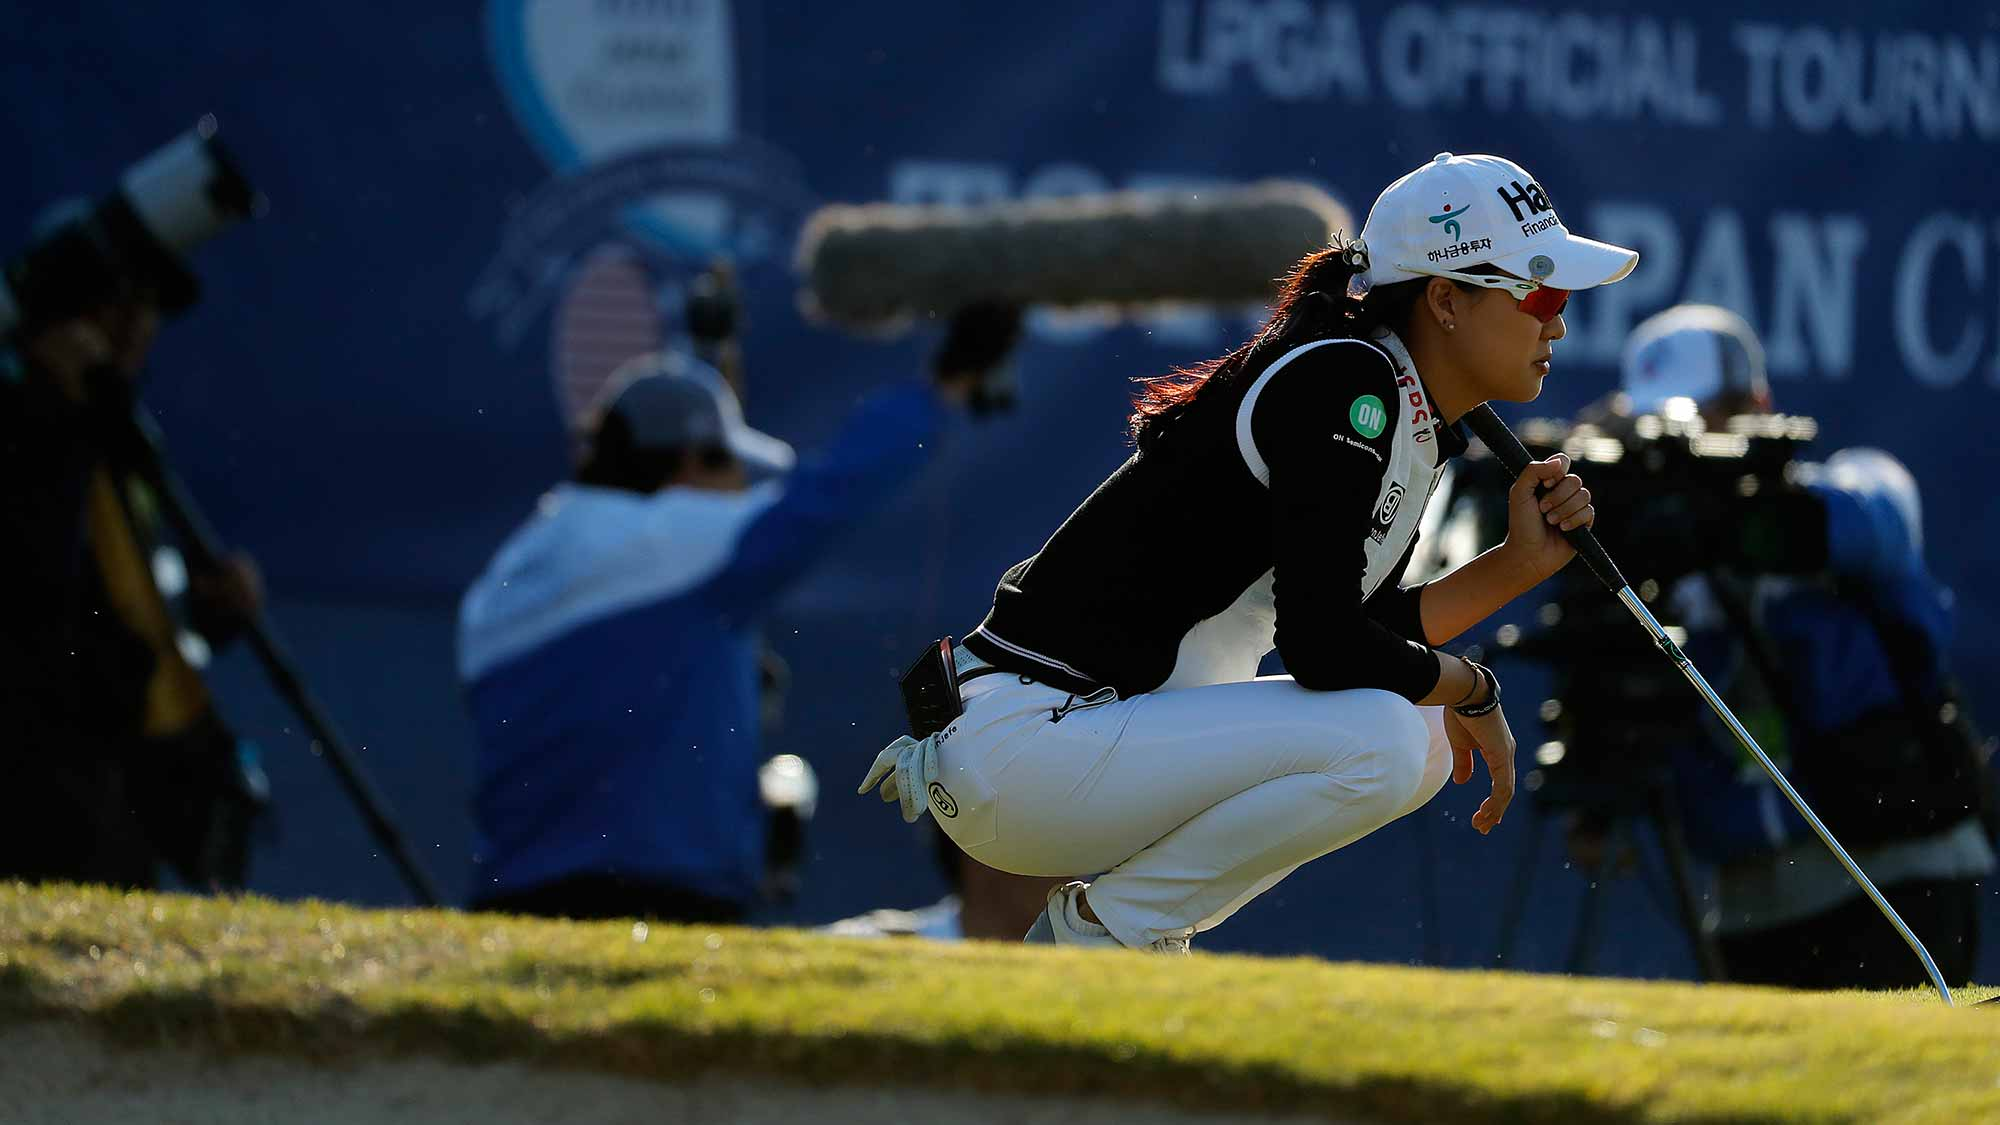 Minjee Lee of Australia prepares to putt on the 18th green during the second round of the TOTO Japan Classic at Seta Golf Course on November 03, 2018 in Otsu, Shiga, Japan